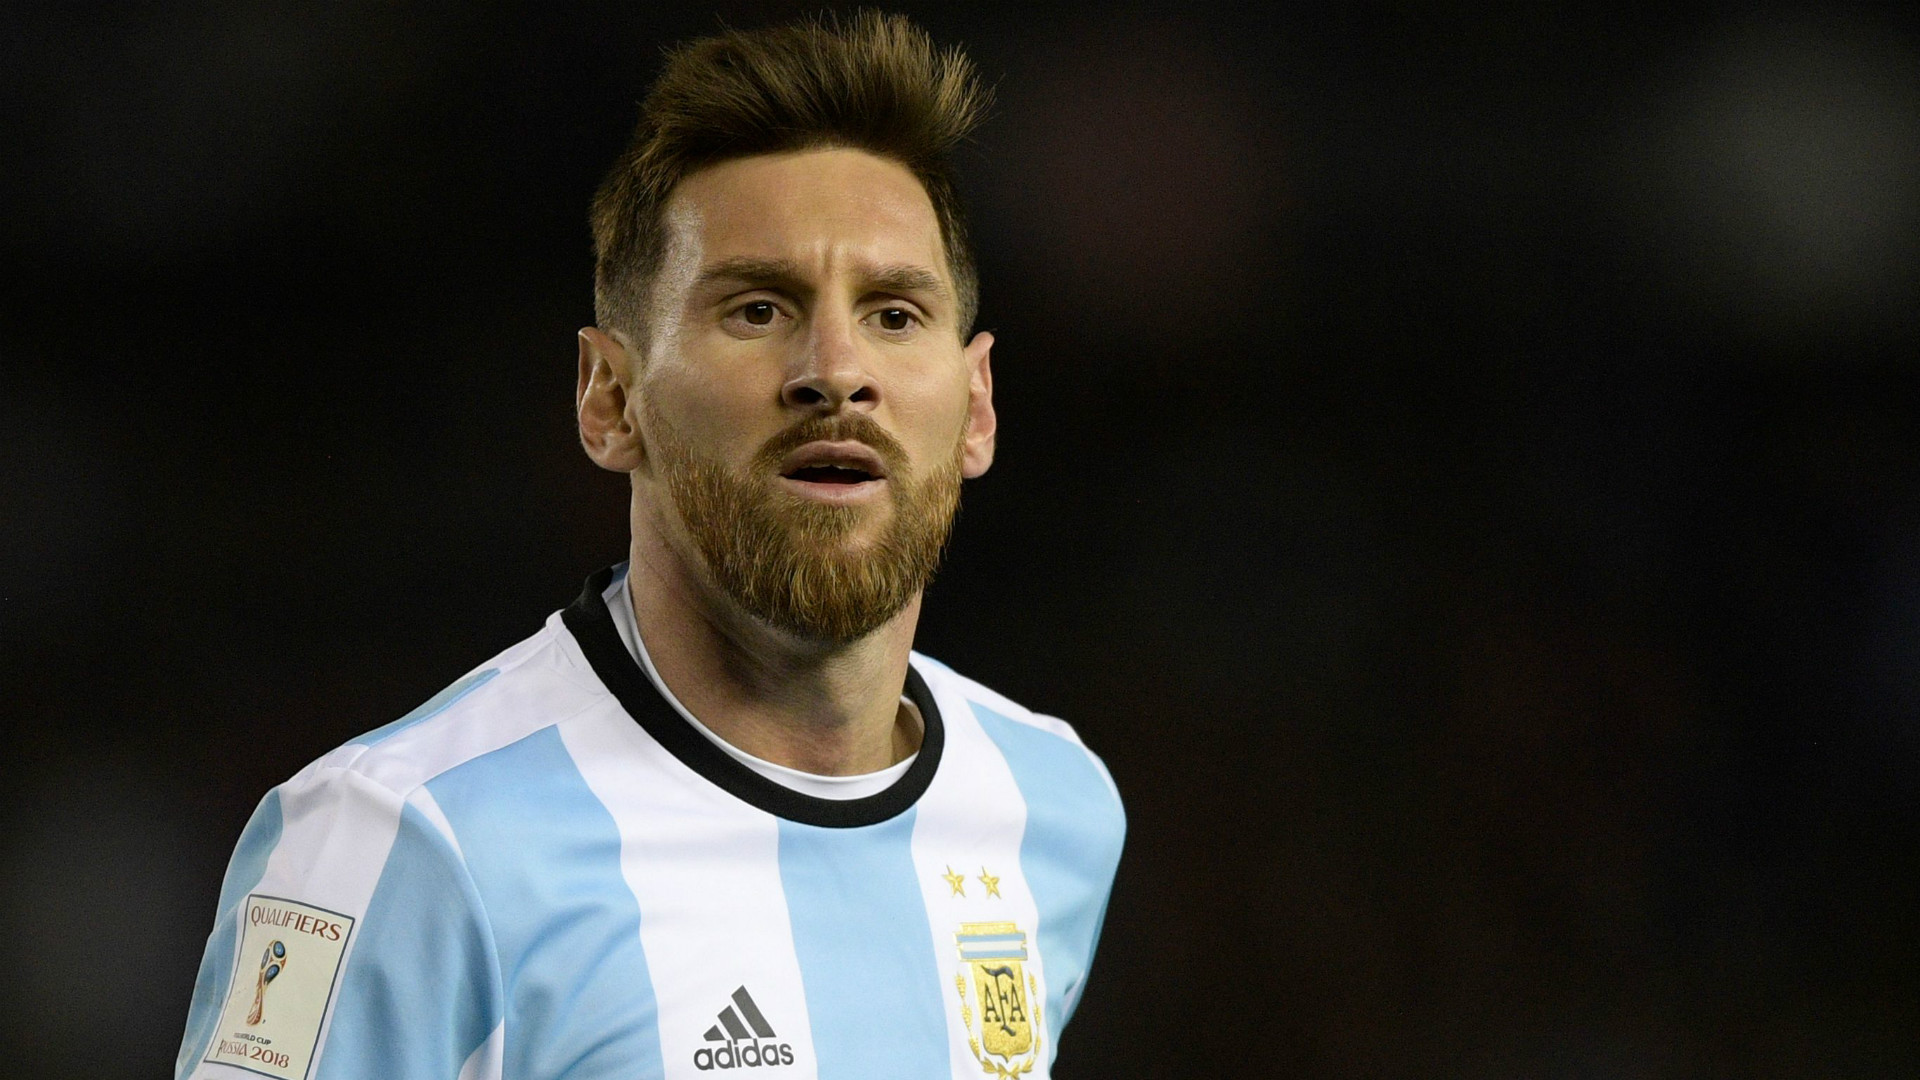 Argentina in peril as World Cup race goes to wire